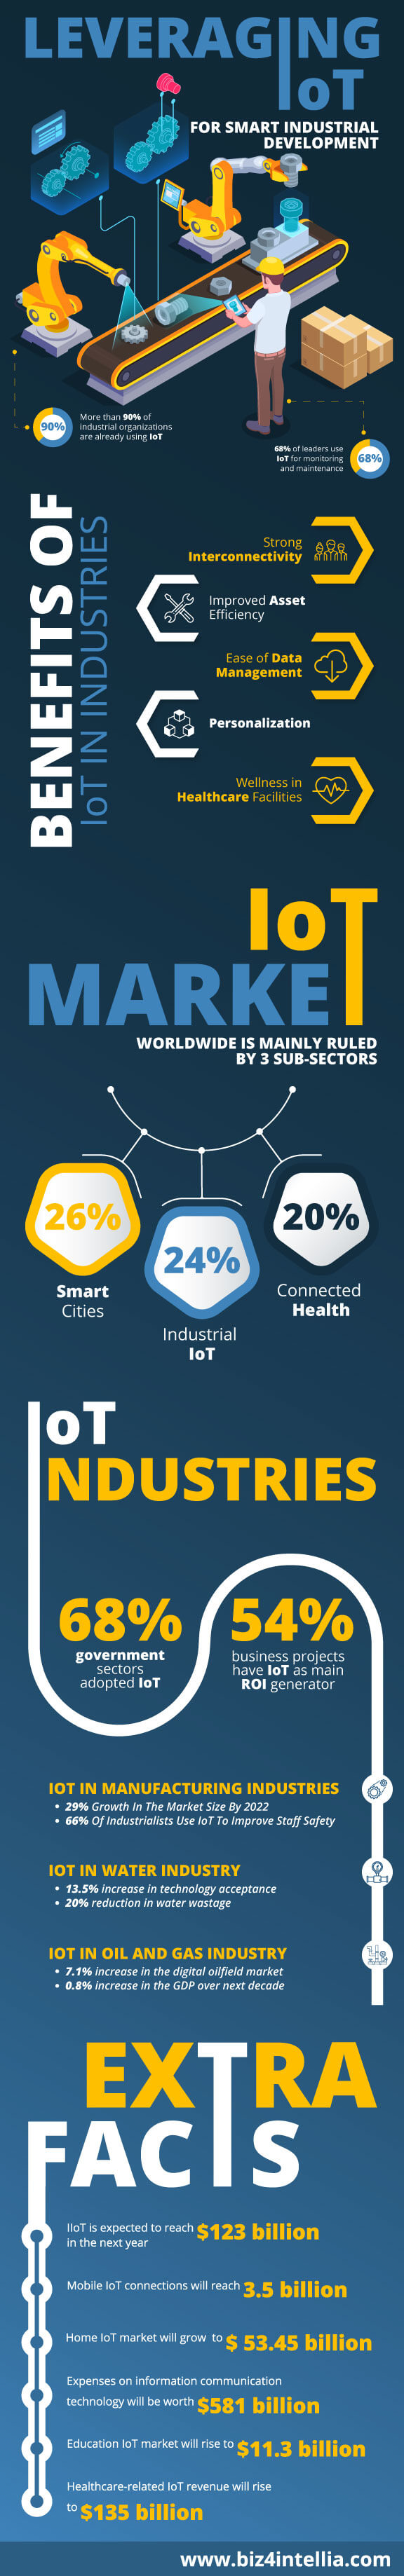 leveraging-iot-for-smart-industrial-development